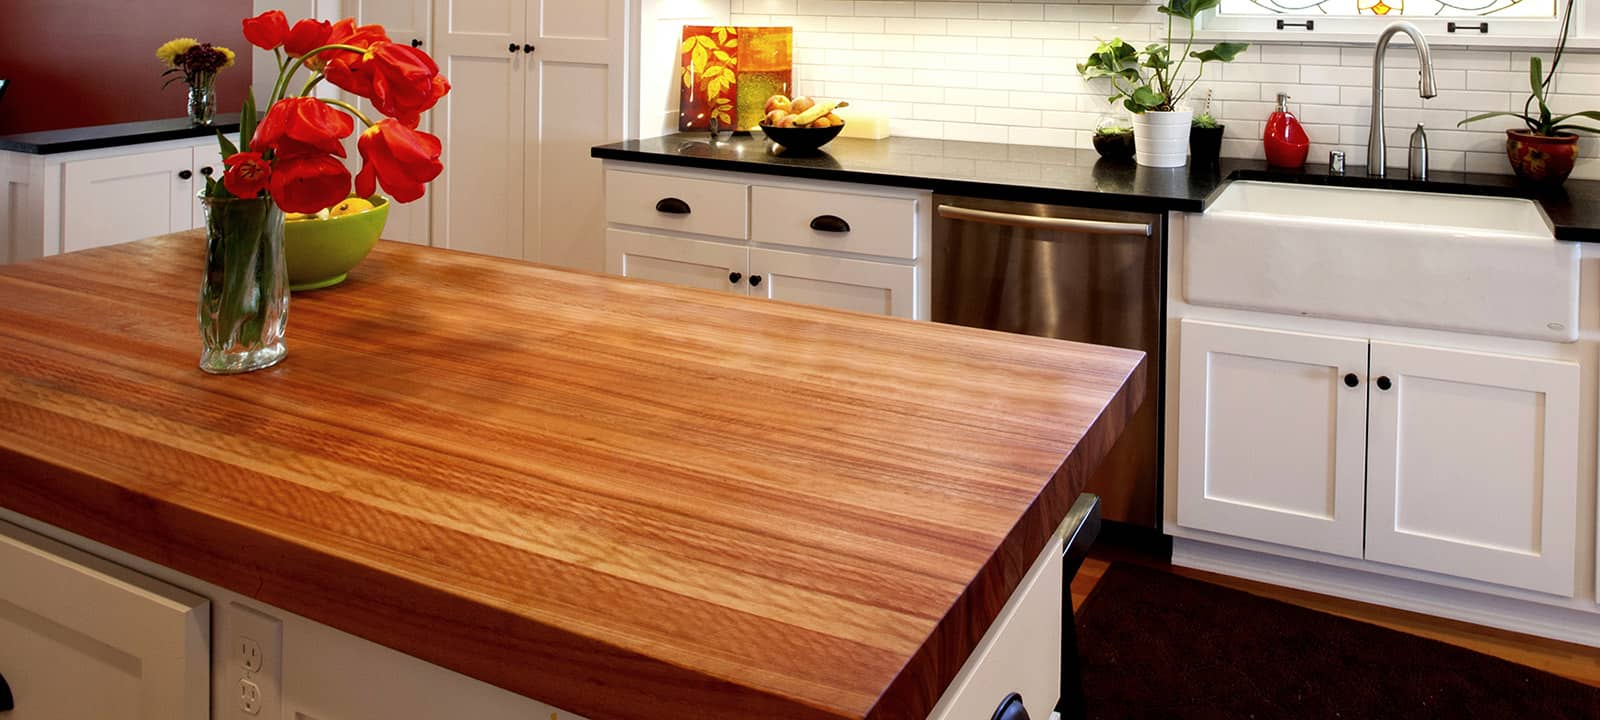 butcher block and wood solid surface countertops are a popular choice for kitchens and bathrooms these days for good reason the wood adds warmth color